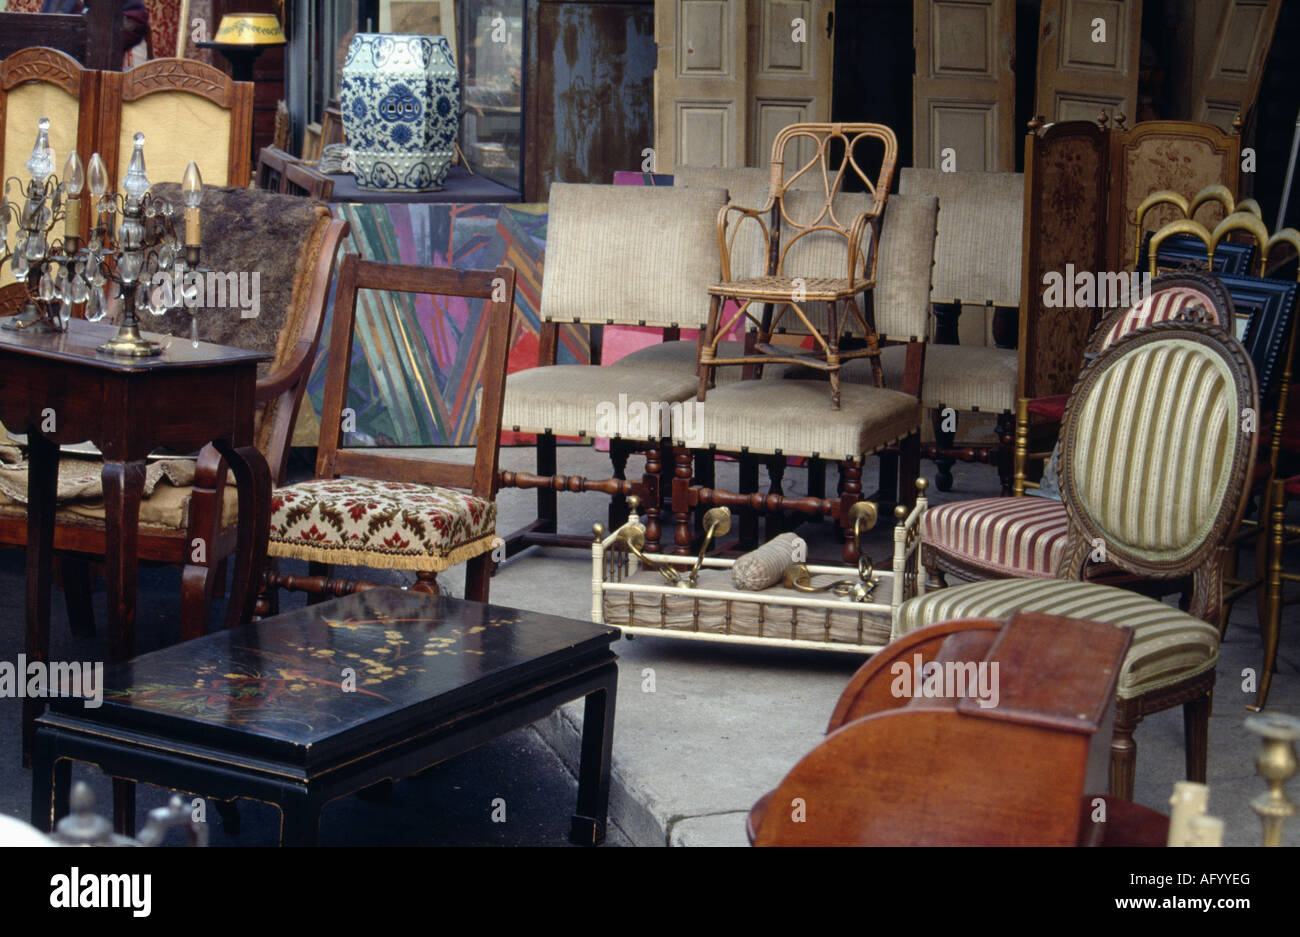 Antique furniture in French antique shop - Antique Furniture In French Antique Shop Stock Photo: 14049111 - Alamy